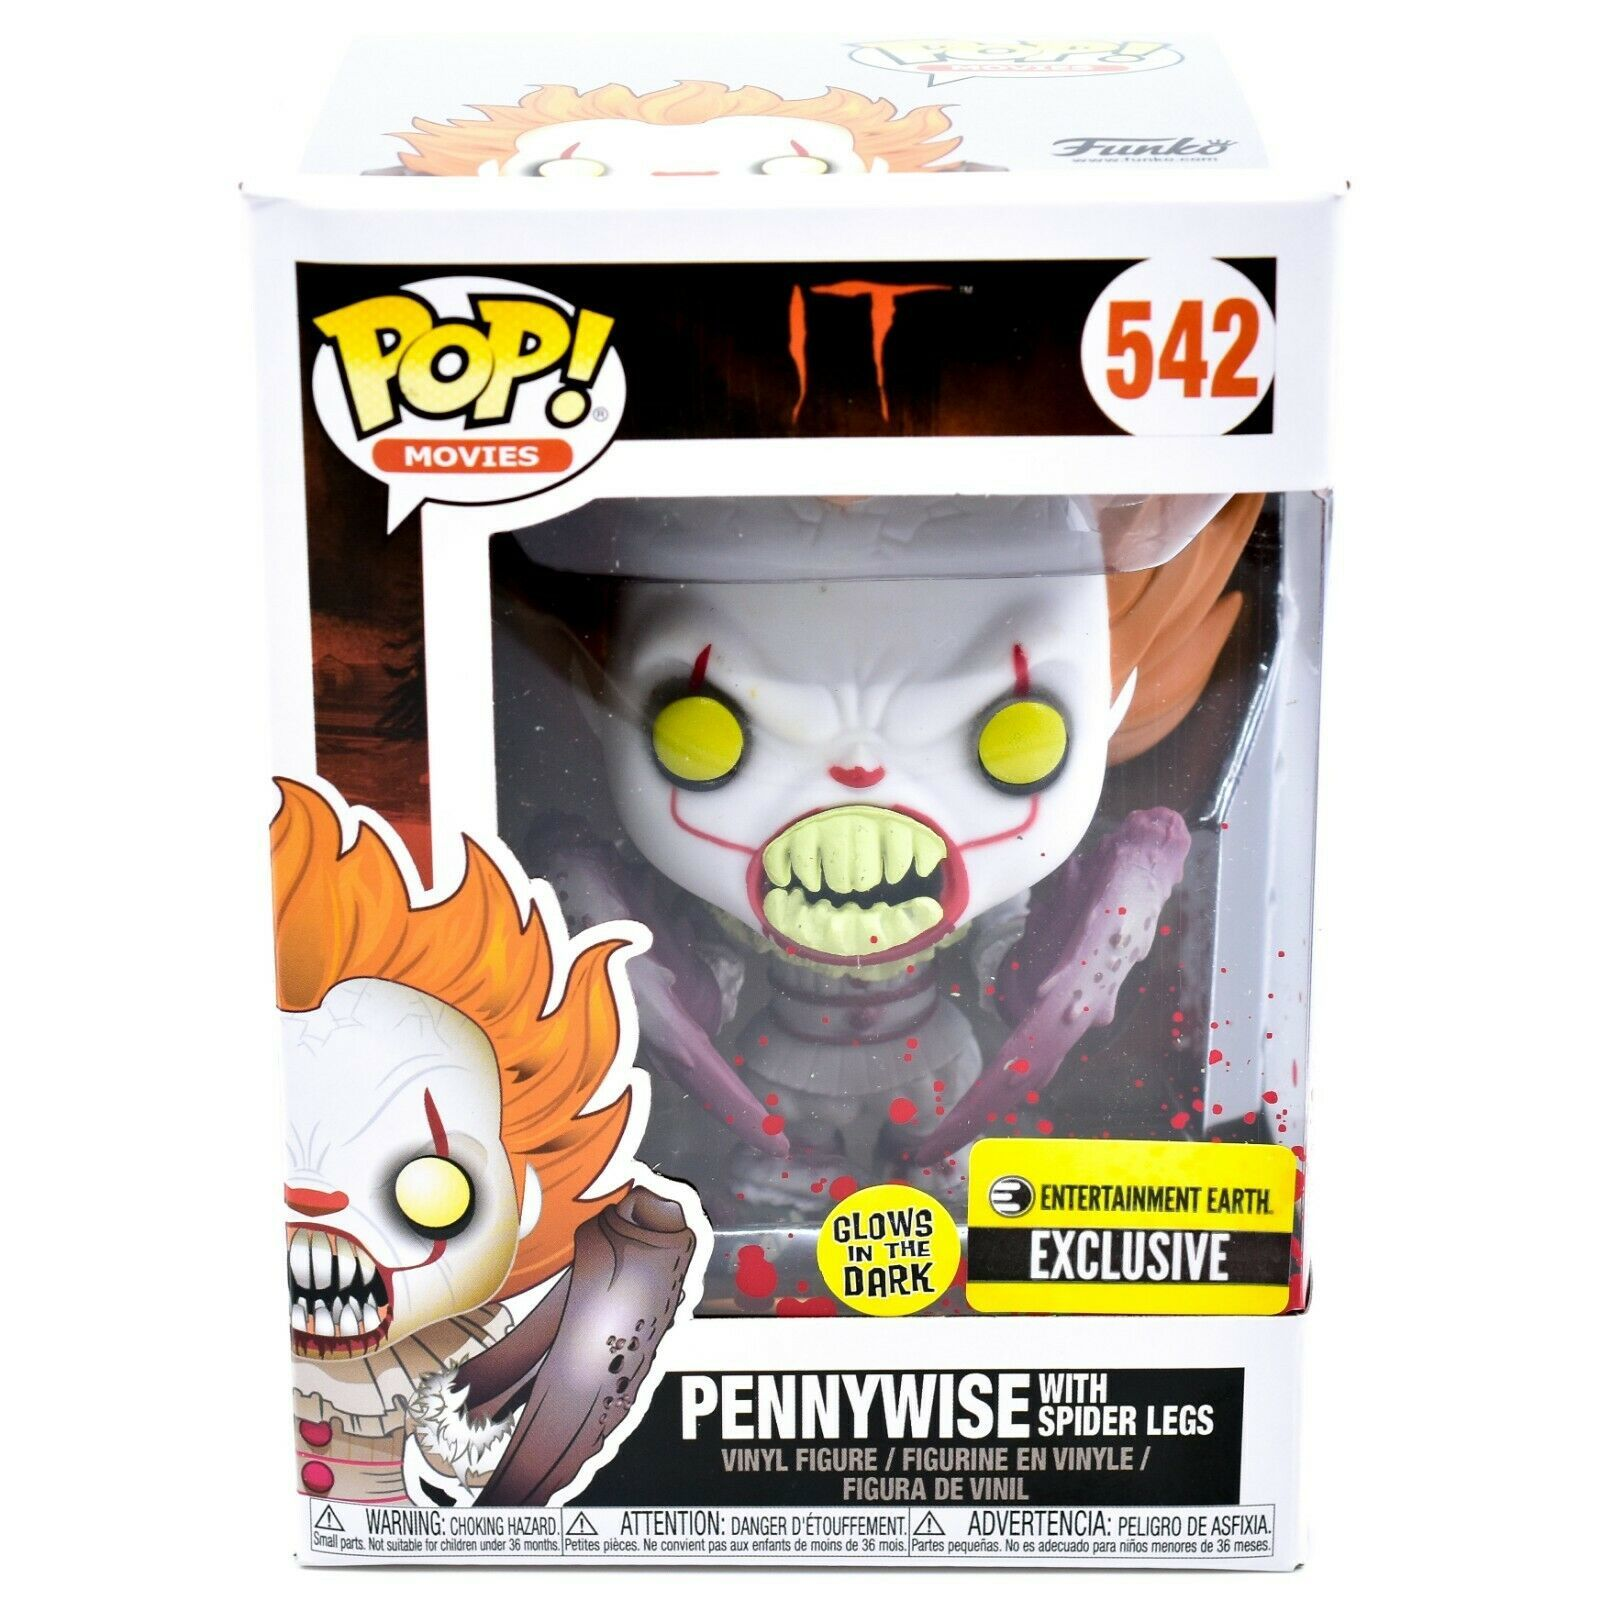 Funko Pop! IT Pennyswise Spider Legs 542 Entertainment Earth Exclusive Figure